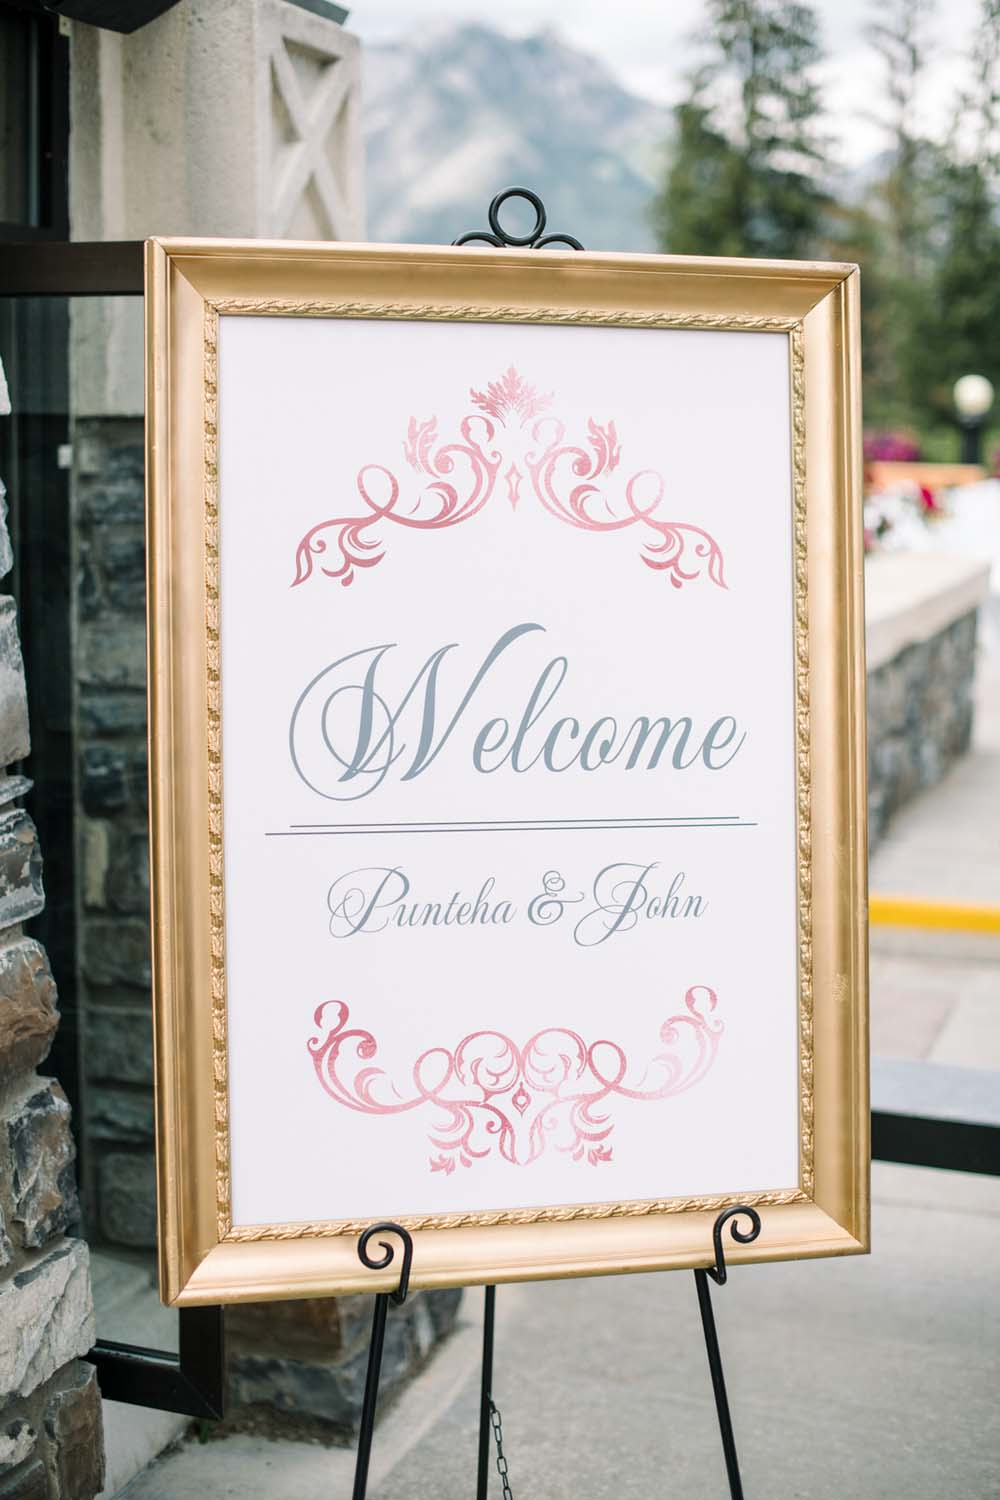 A Regal Fairytale Wedding in Banff, Alberta - Welcome